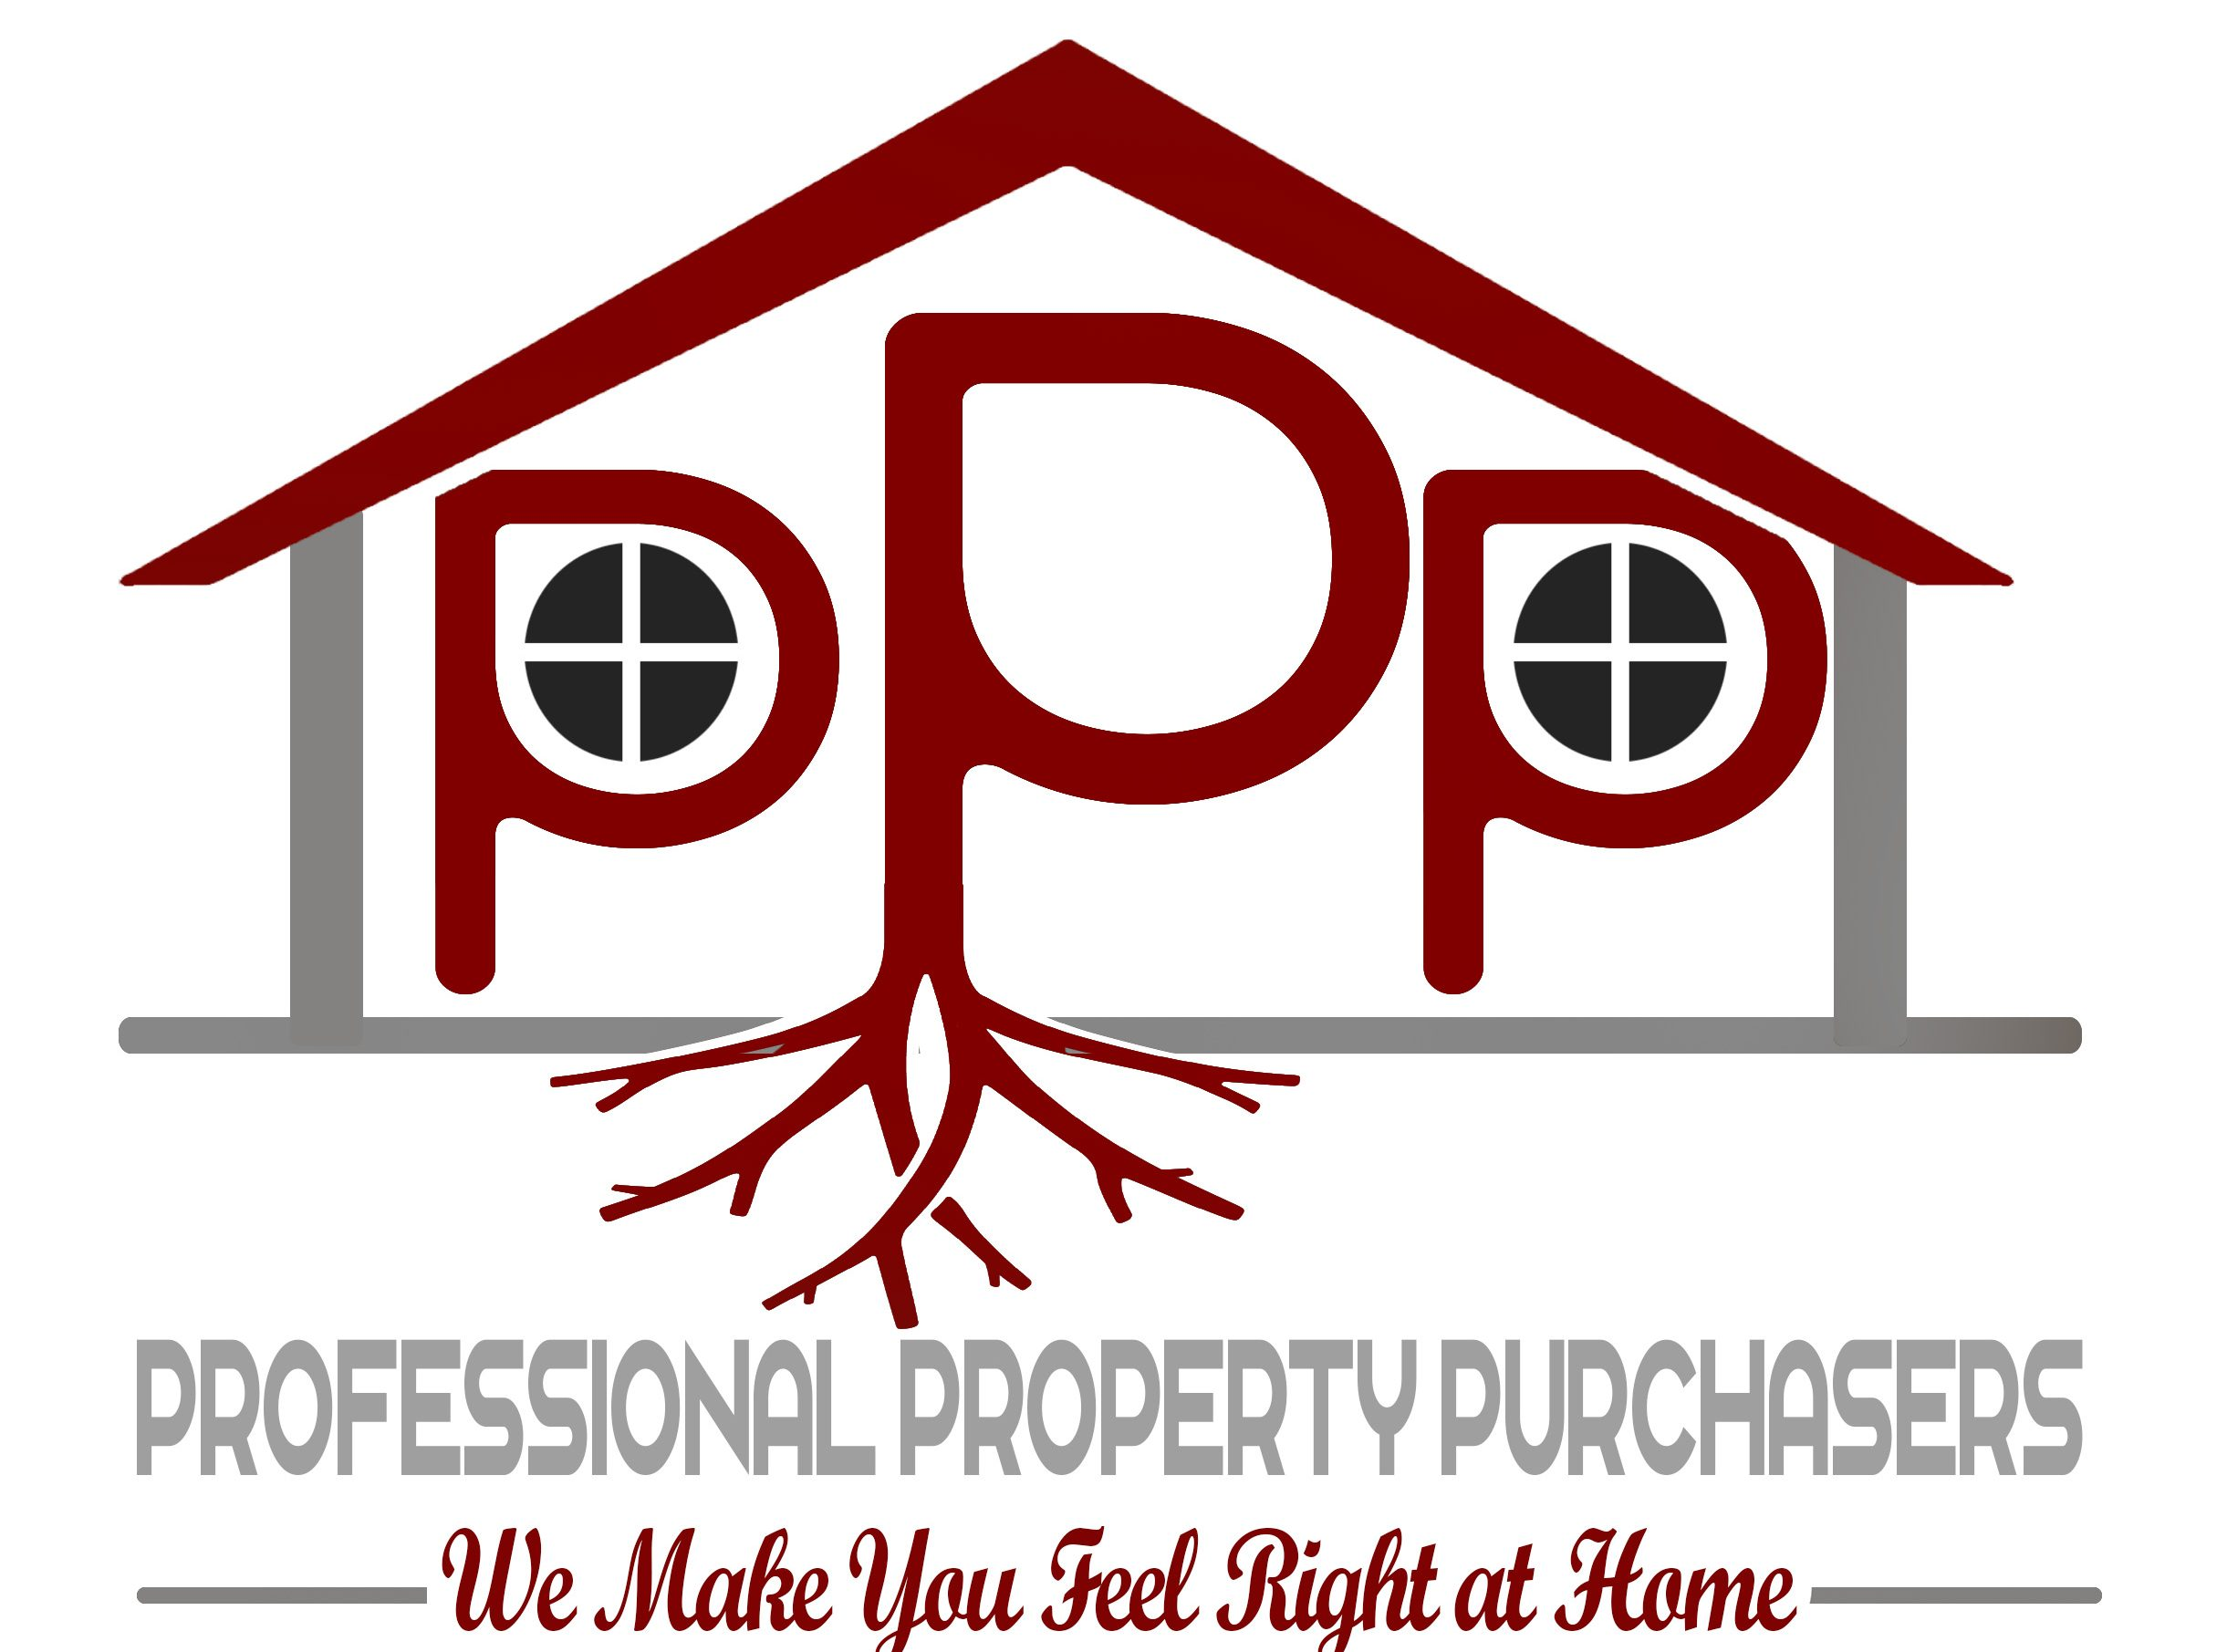 Professional Property Purchasers